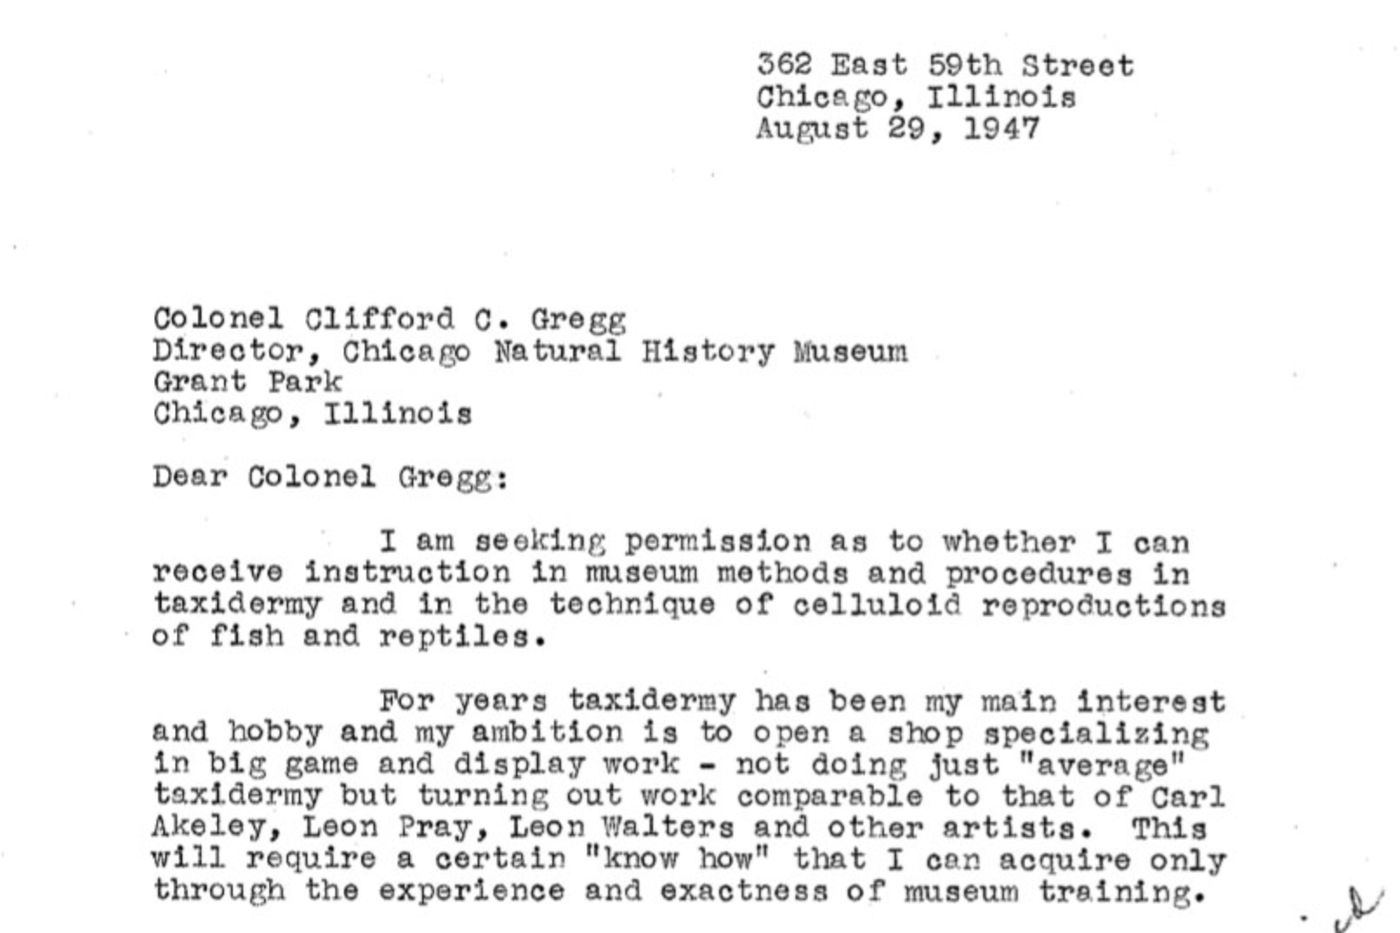 A typewritten letter, in which Cotton inquires about the availability of taxidermy training at the museum.